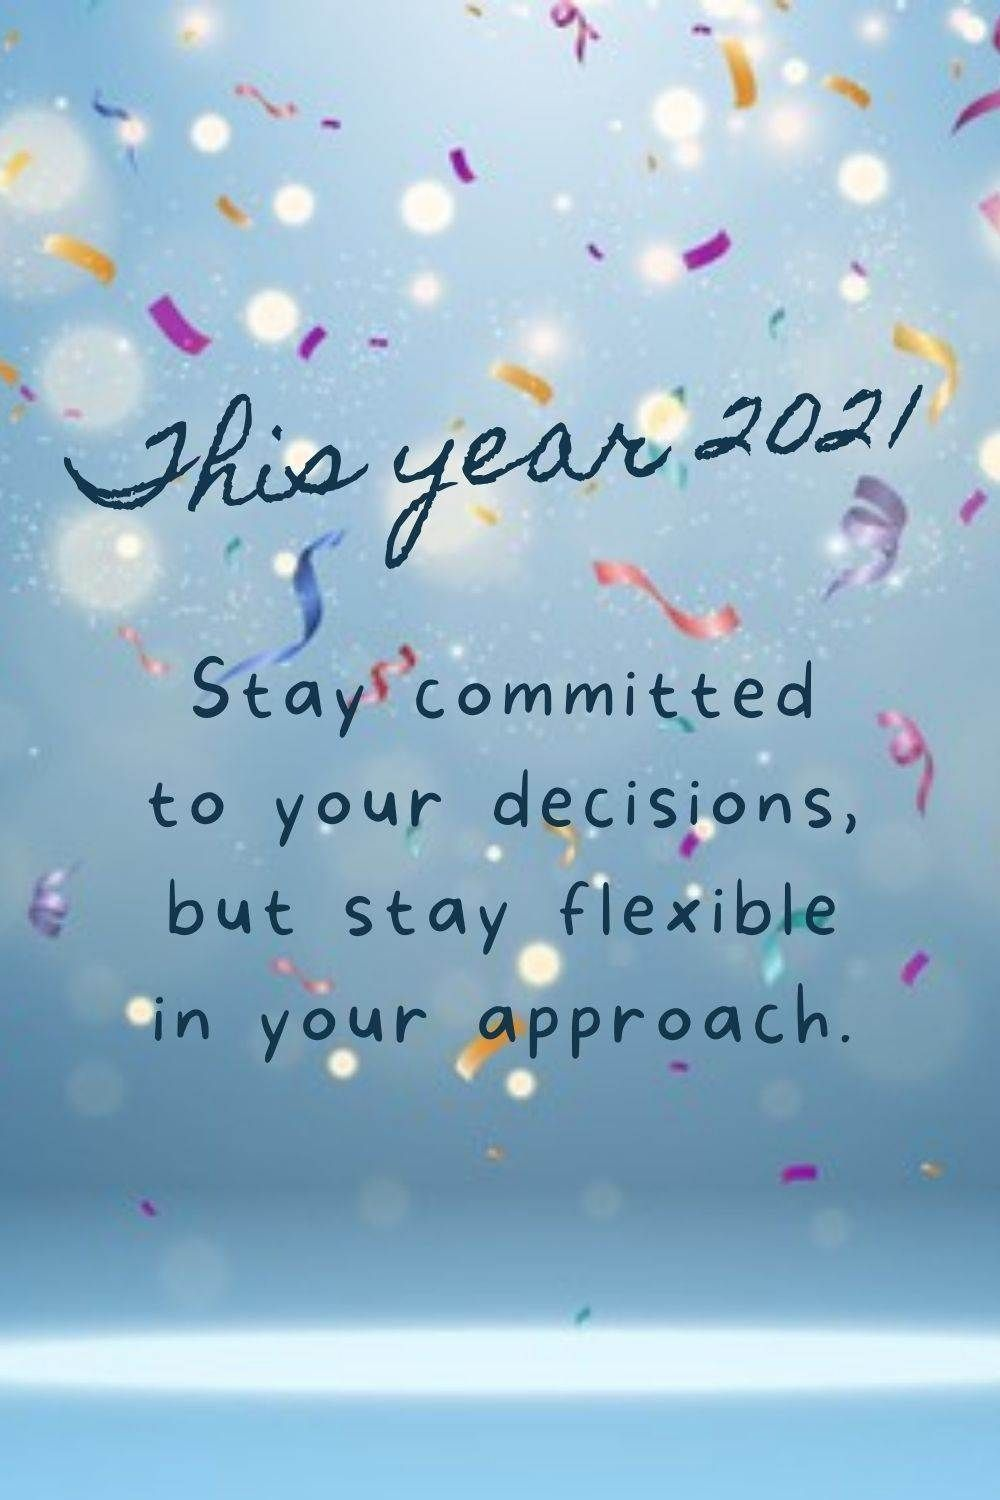 Inspirational New Year Decisions 2021 Quotes And Commitment Messages For Friends And Families Quotes About New Year Year Quotes Messages For Friends